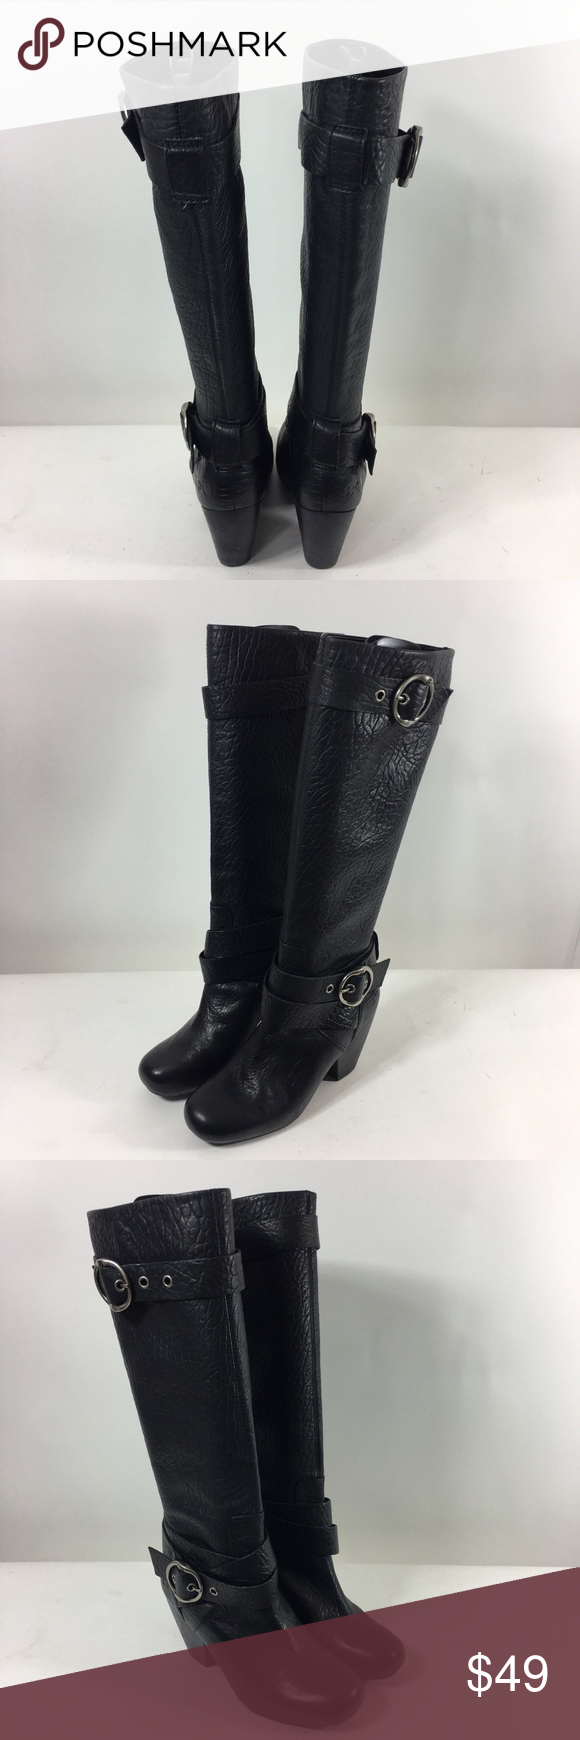 Lucky Brand Woman's Leather Buckle Knee High Boots Lucky Brand Woman's Knee High Black Leather Boots . Size 7.5 . Heel height 3.5 inches and front platform 1 inch. Shaft 14.5 inches shaft height and shaft width 13 inches . No major flaws or defects . Lucky Brand Shoes Heeled Boots